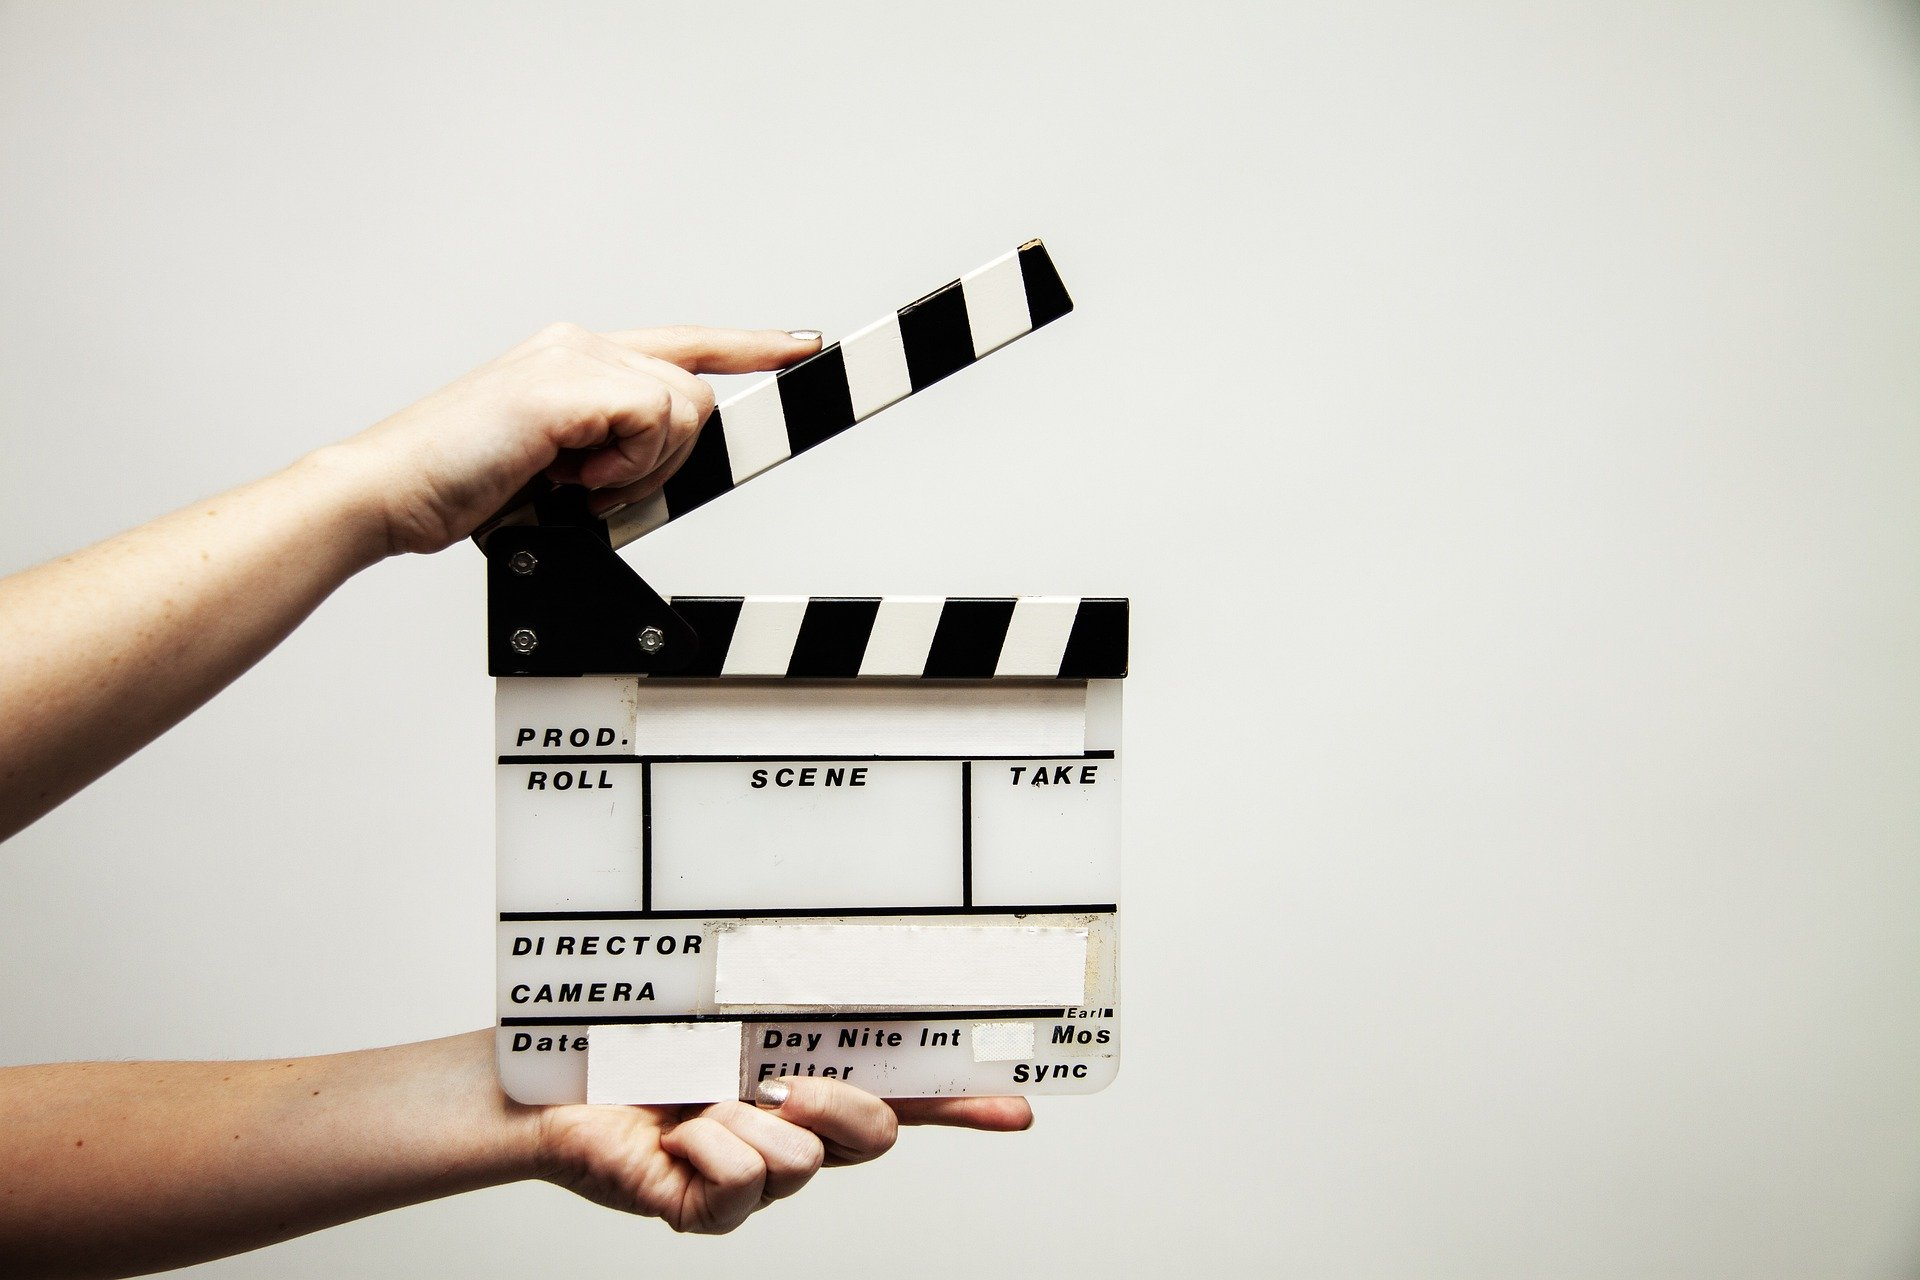 Two hands holding a video clapperboard against a white wall